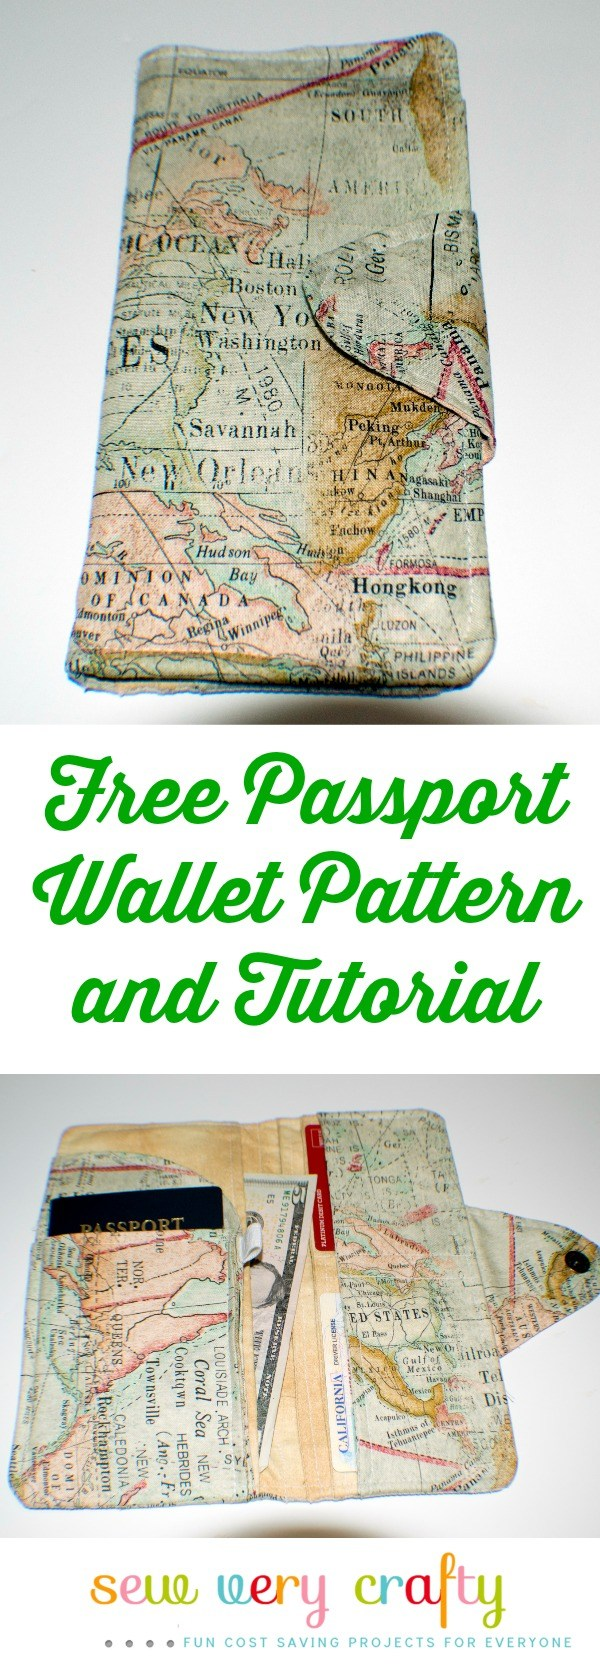 Sewing tutorial: Passport wallet with lots of pockets